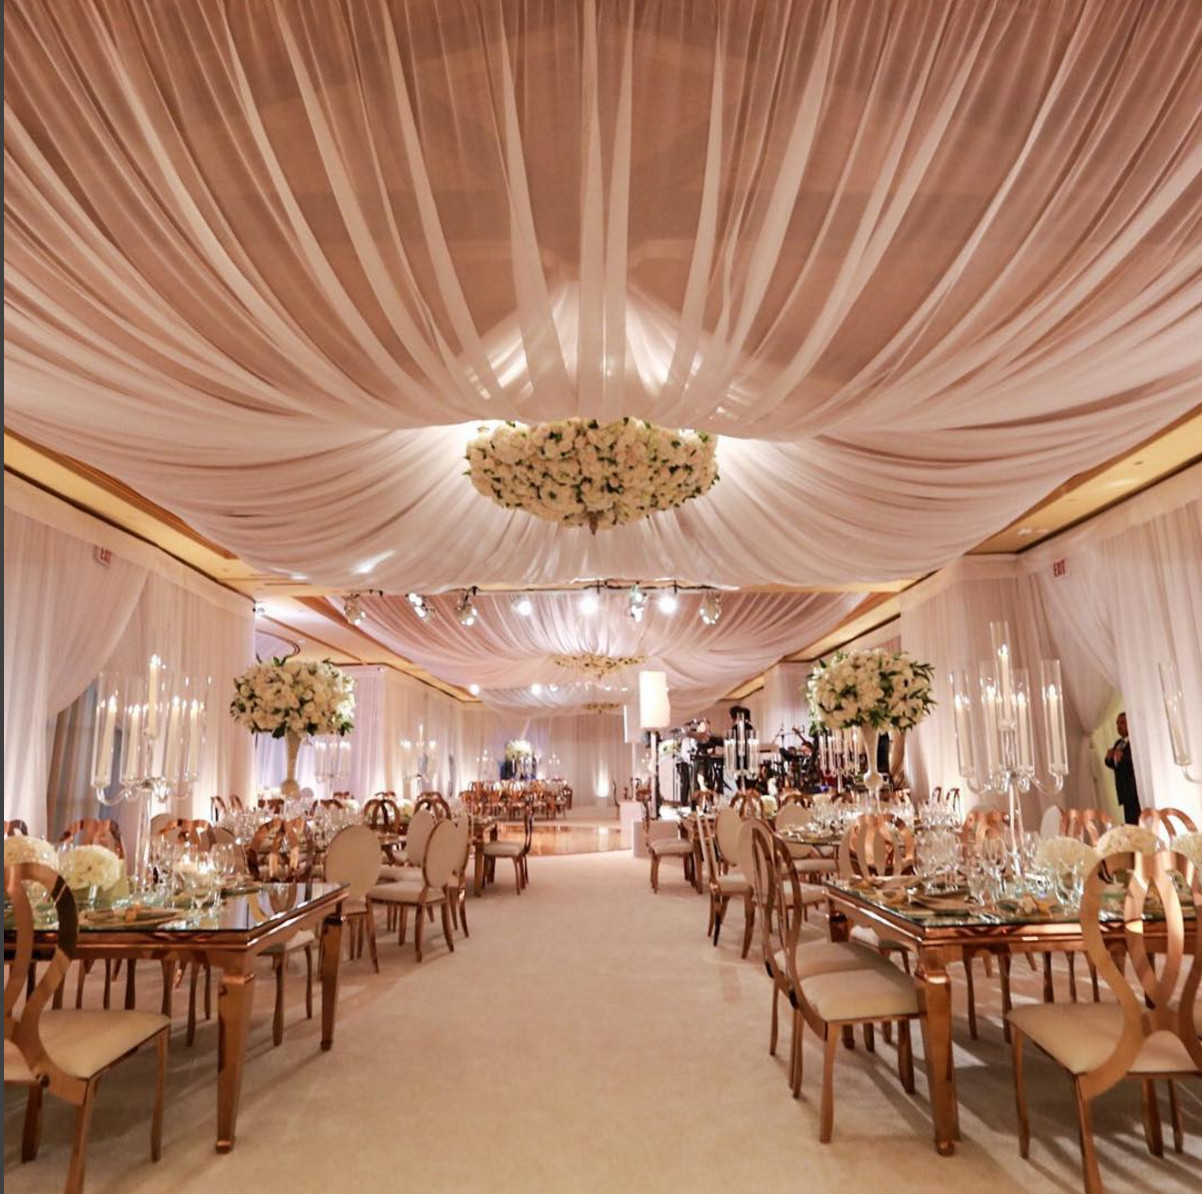 Best ideas about Wedding Drapes DIY . Save or Pin Bloom Box Designs wedding reception indoor wedding Now.